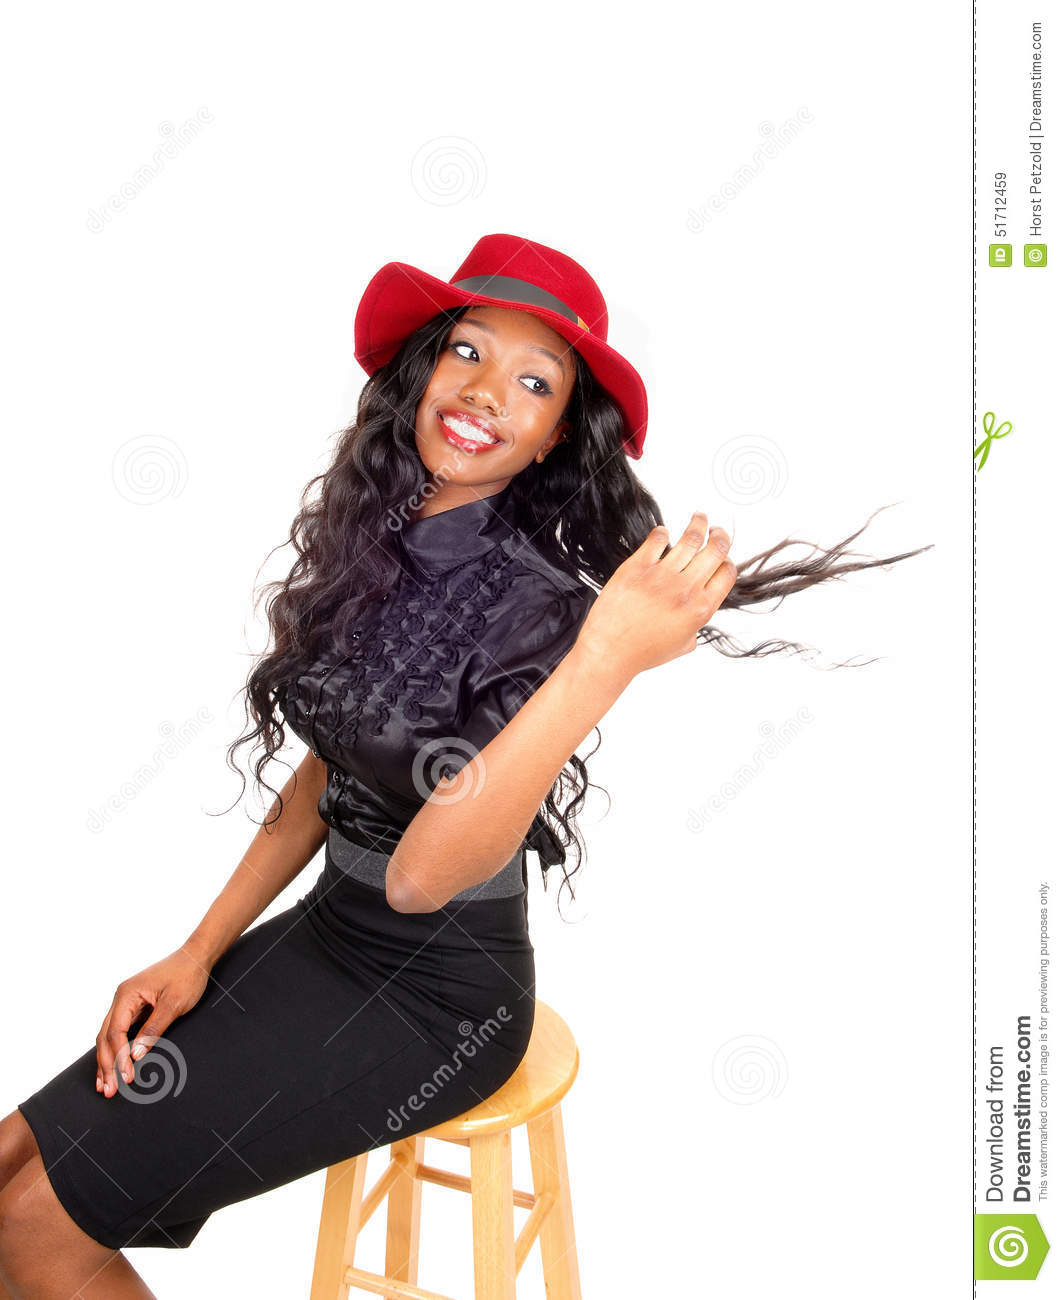 Black child sitting in chair - Black Woman With Red Hat Sitting On Chair